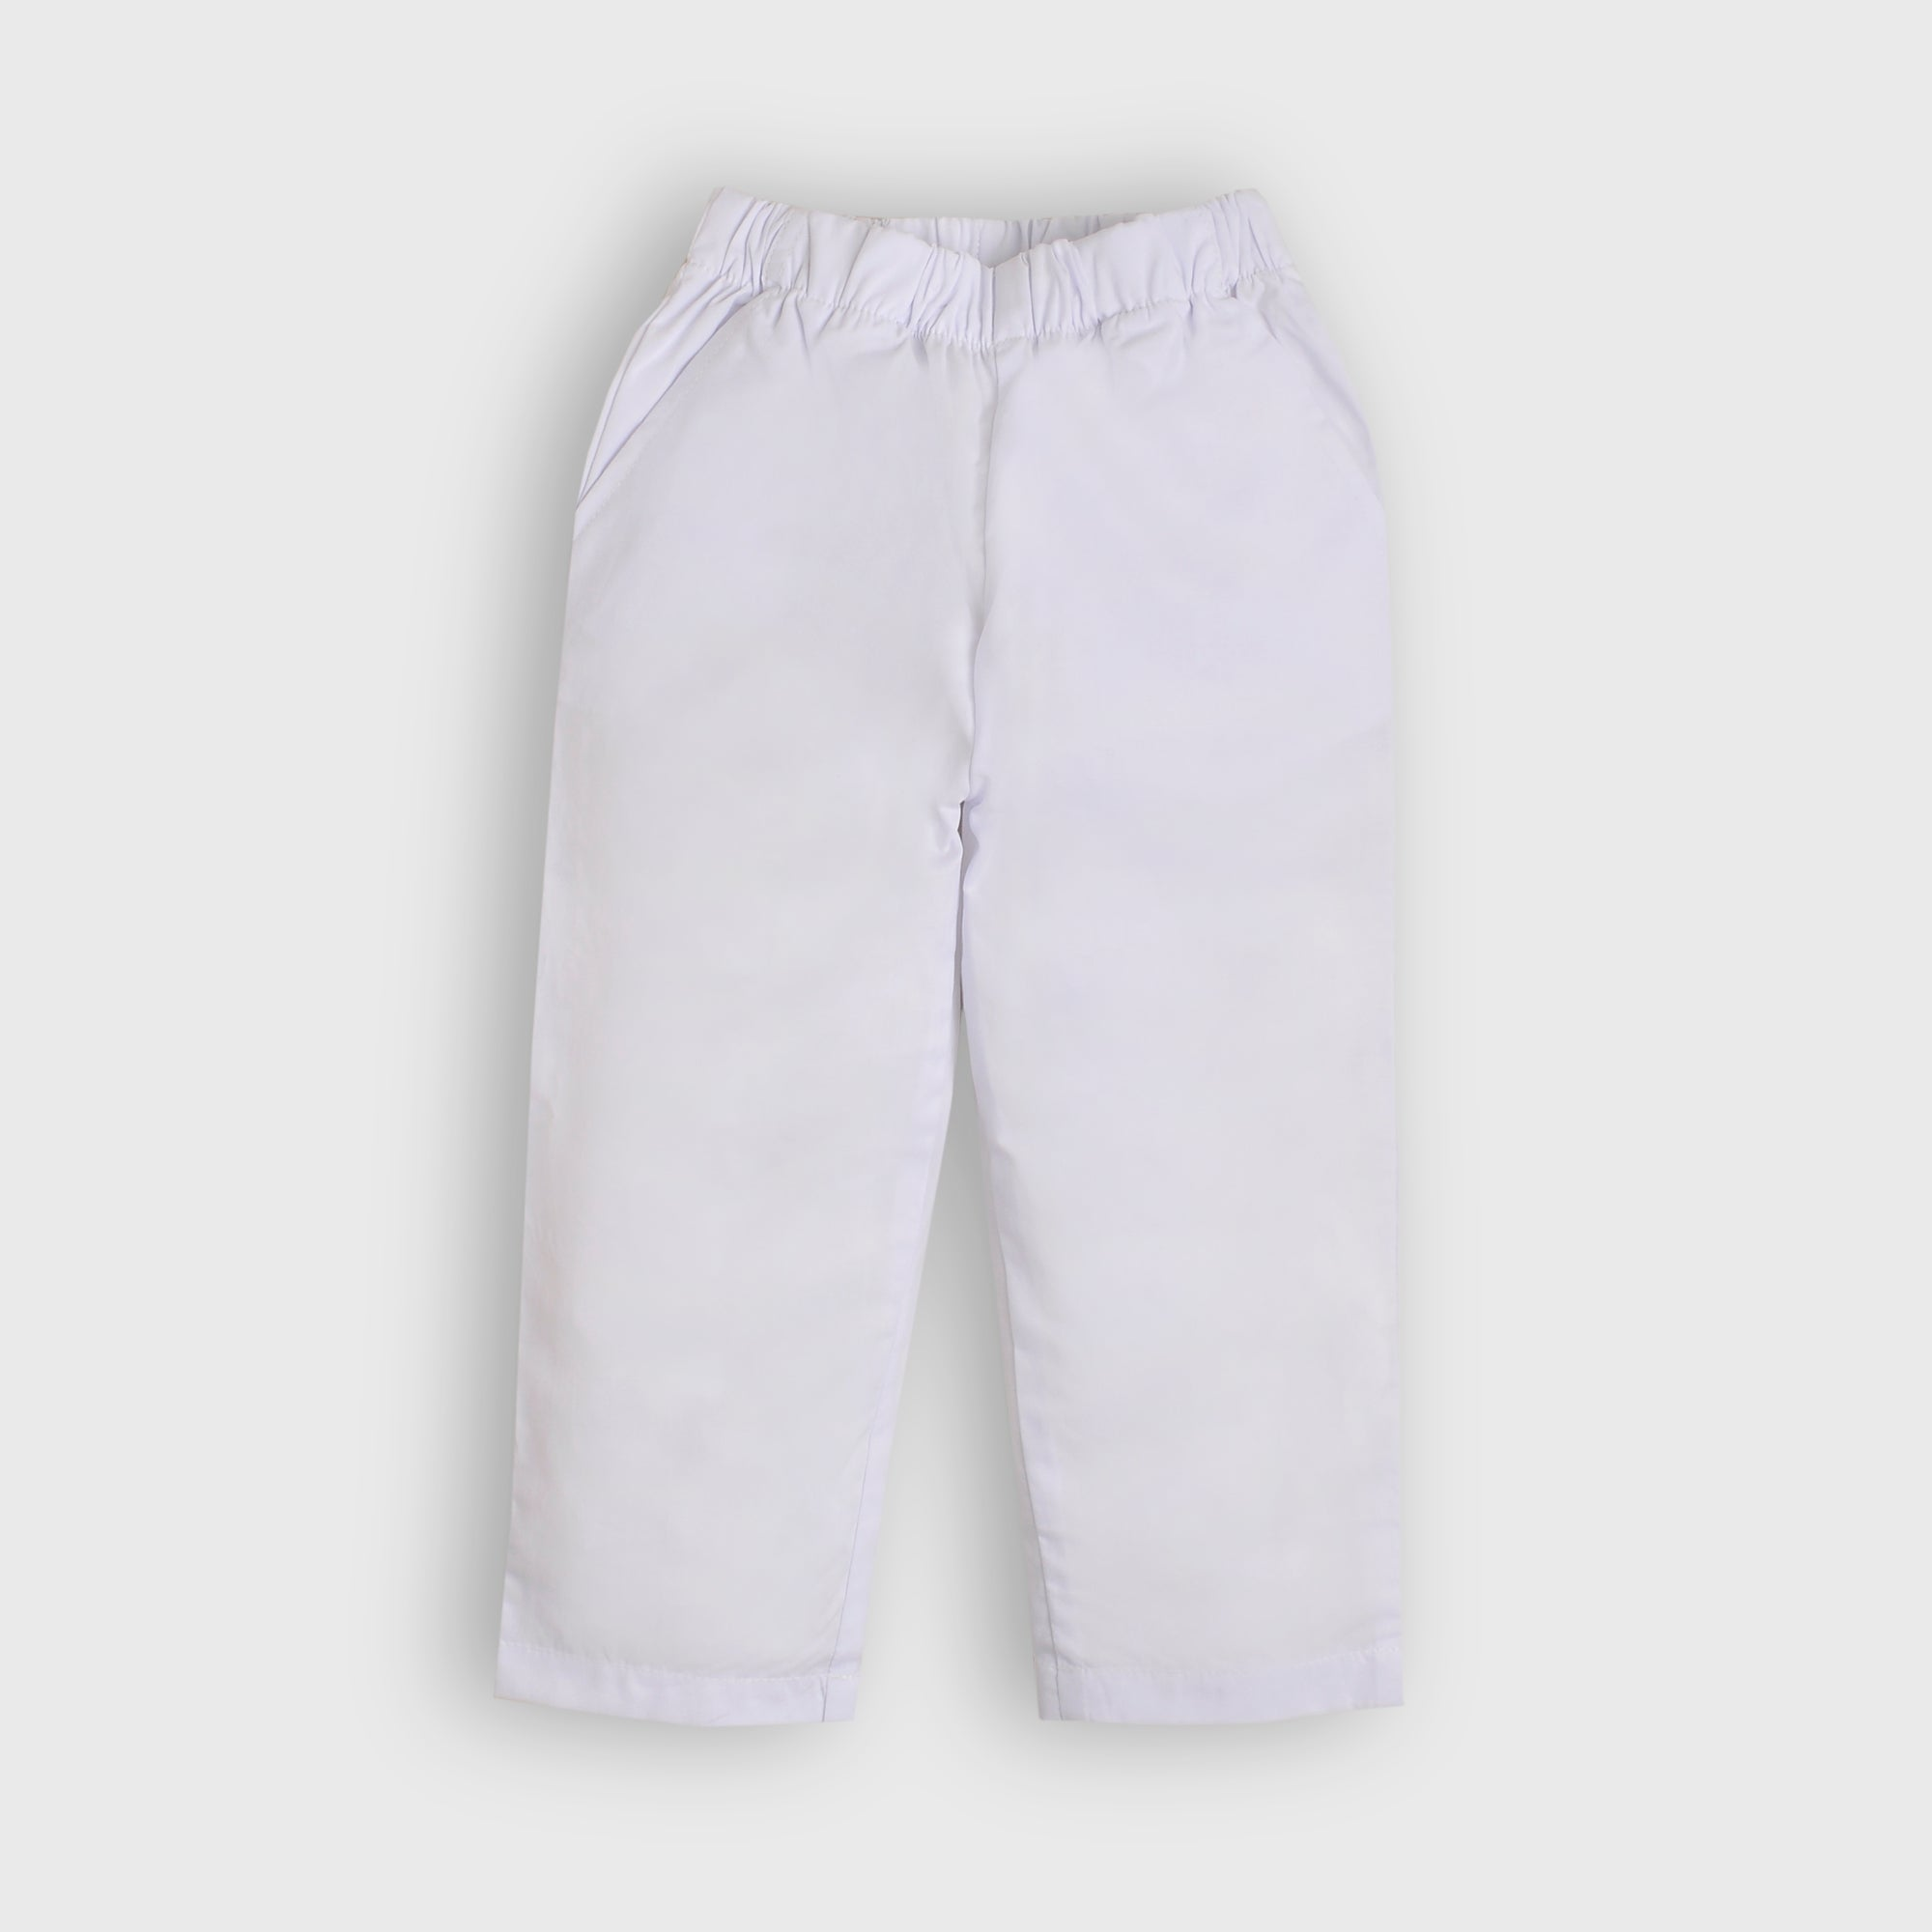 Basic White Trousers